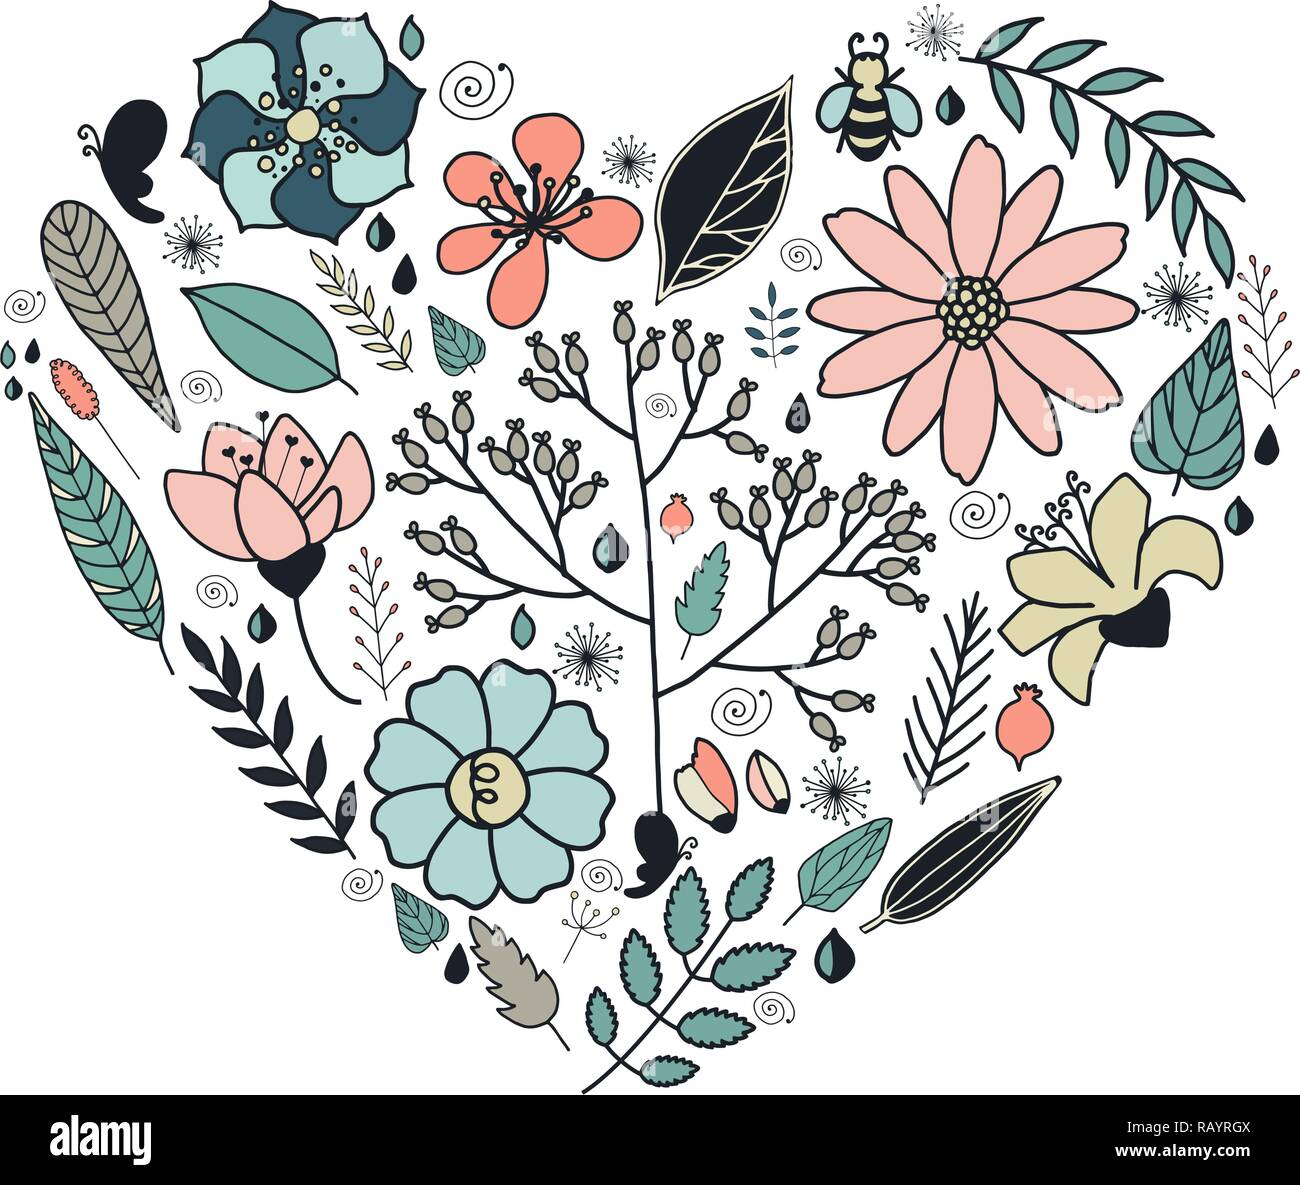 Heart Made Of Flowers In Vector Doodle Design Element In A